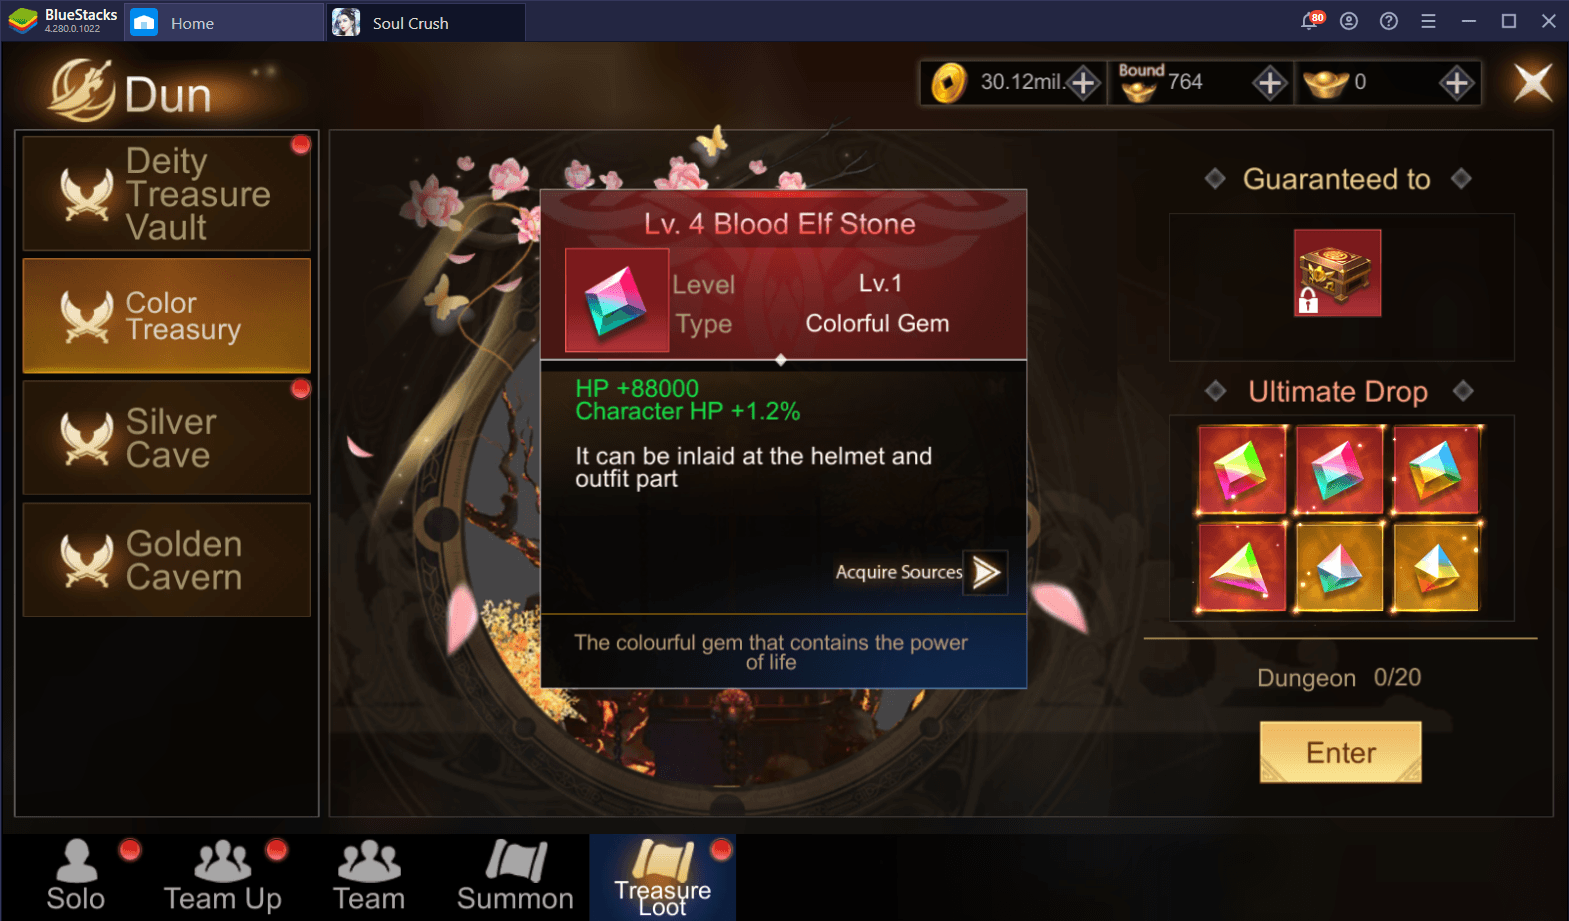 A Guide to Acquiring and Upgrading Gear in Soul Crush: Kong Fu World